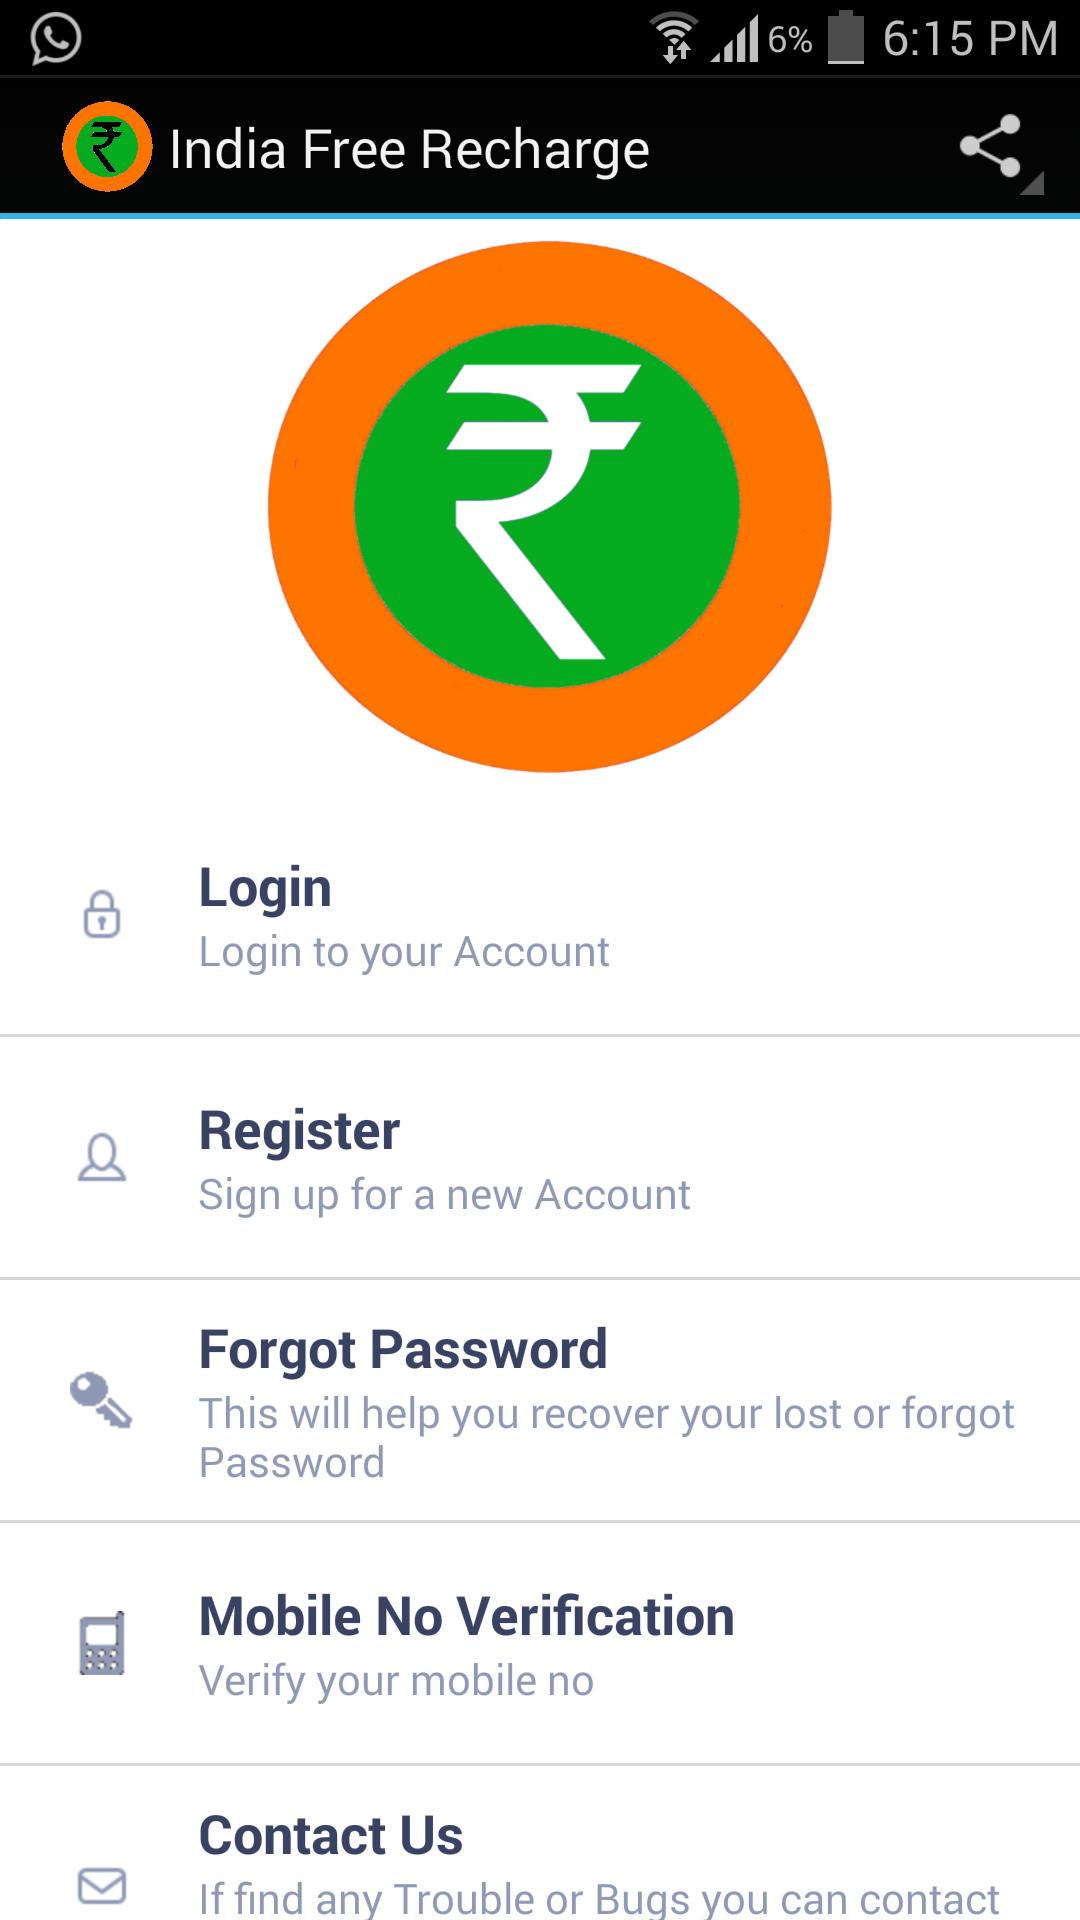 India Free Recharge for Android - APK Download